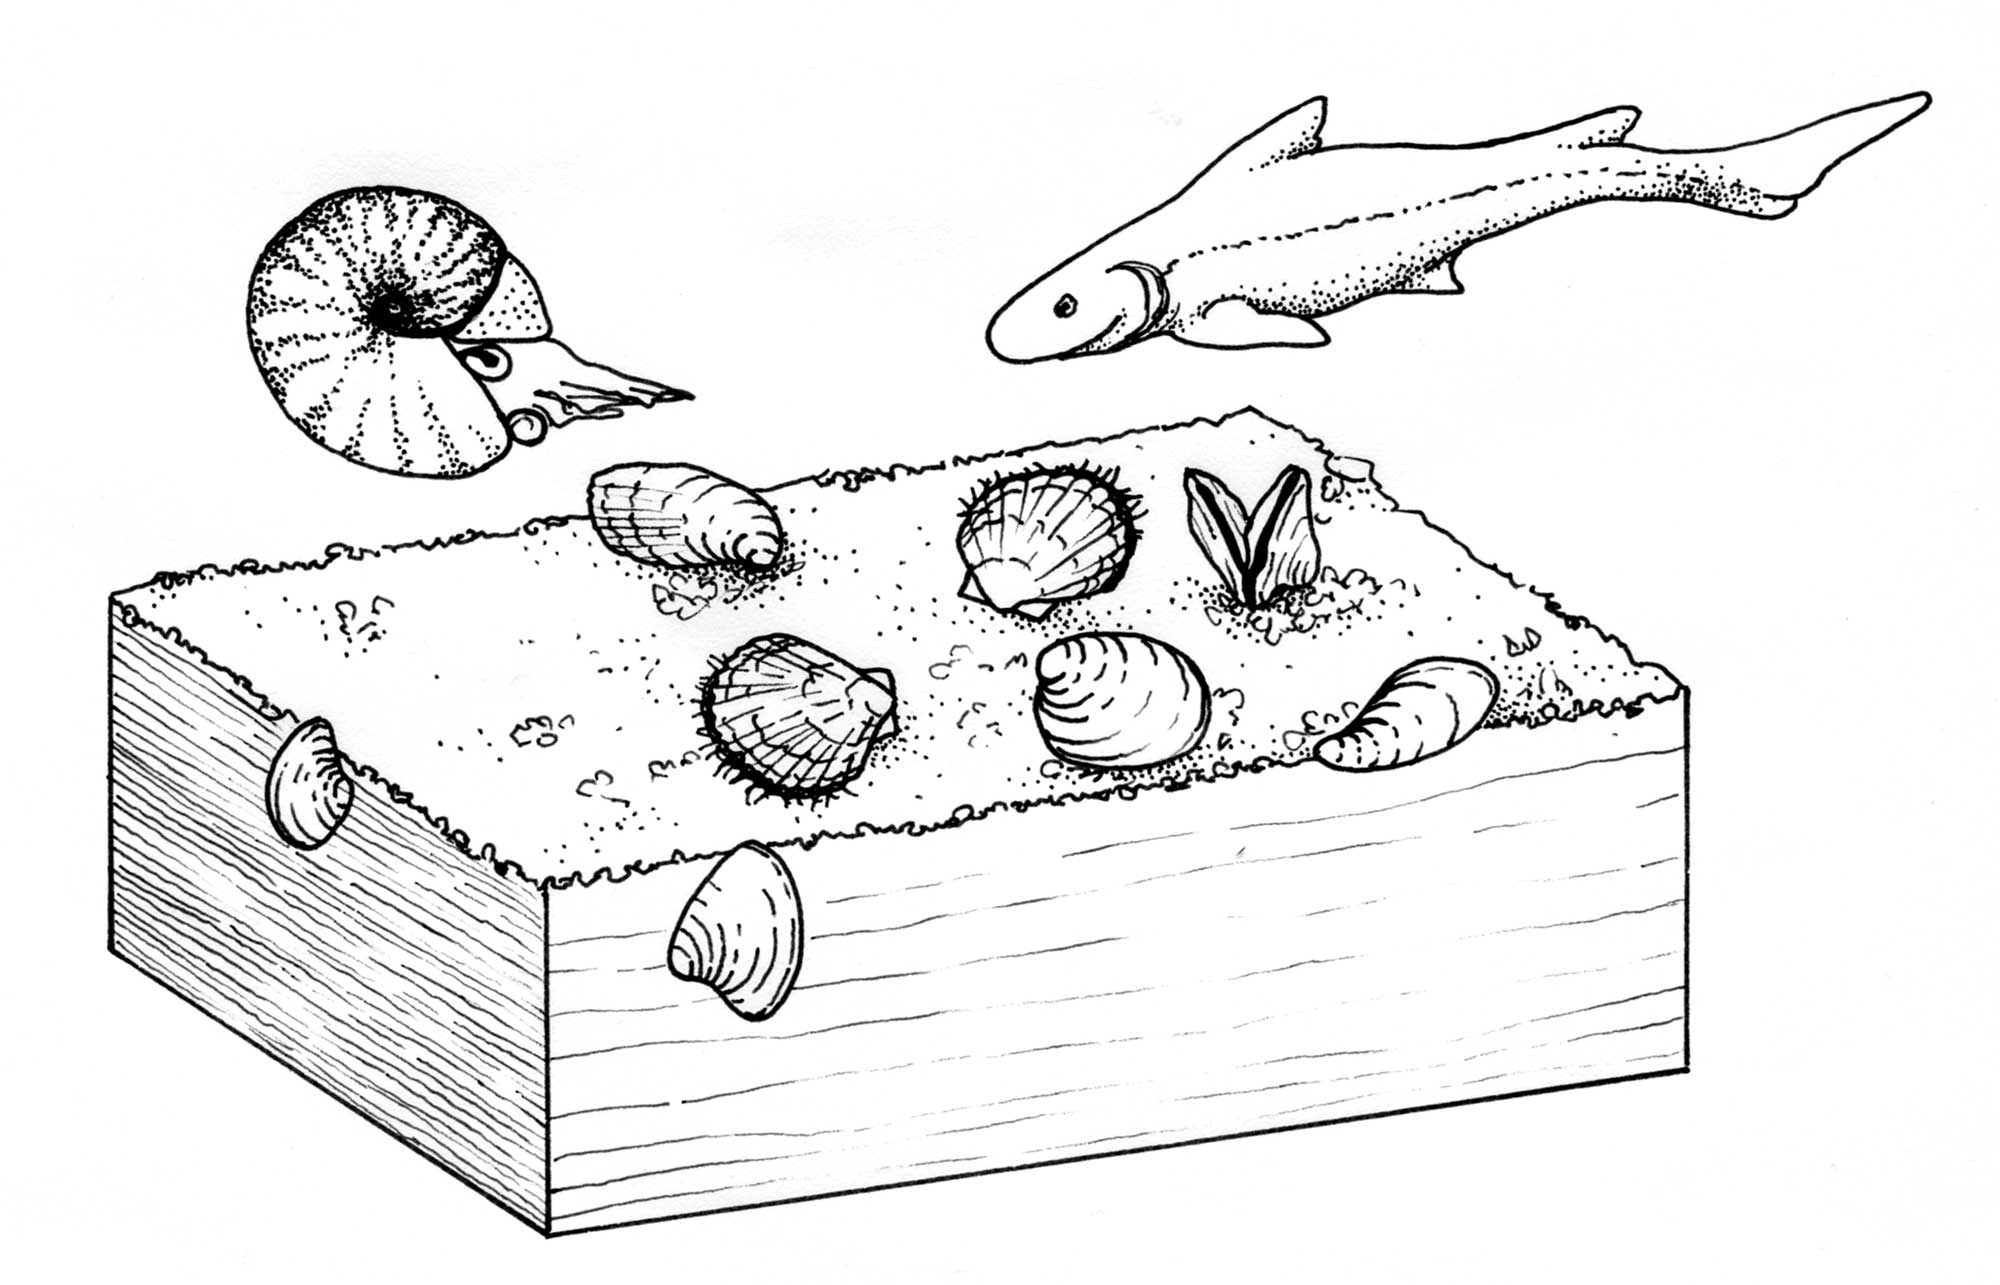 Illustration of the life habits of Triassic bivalves.